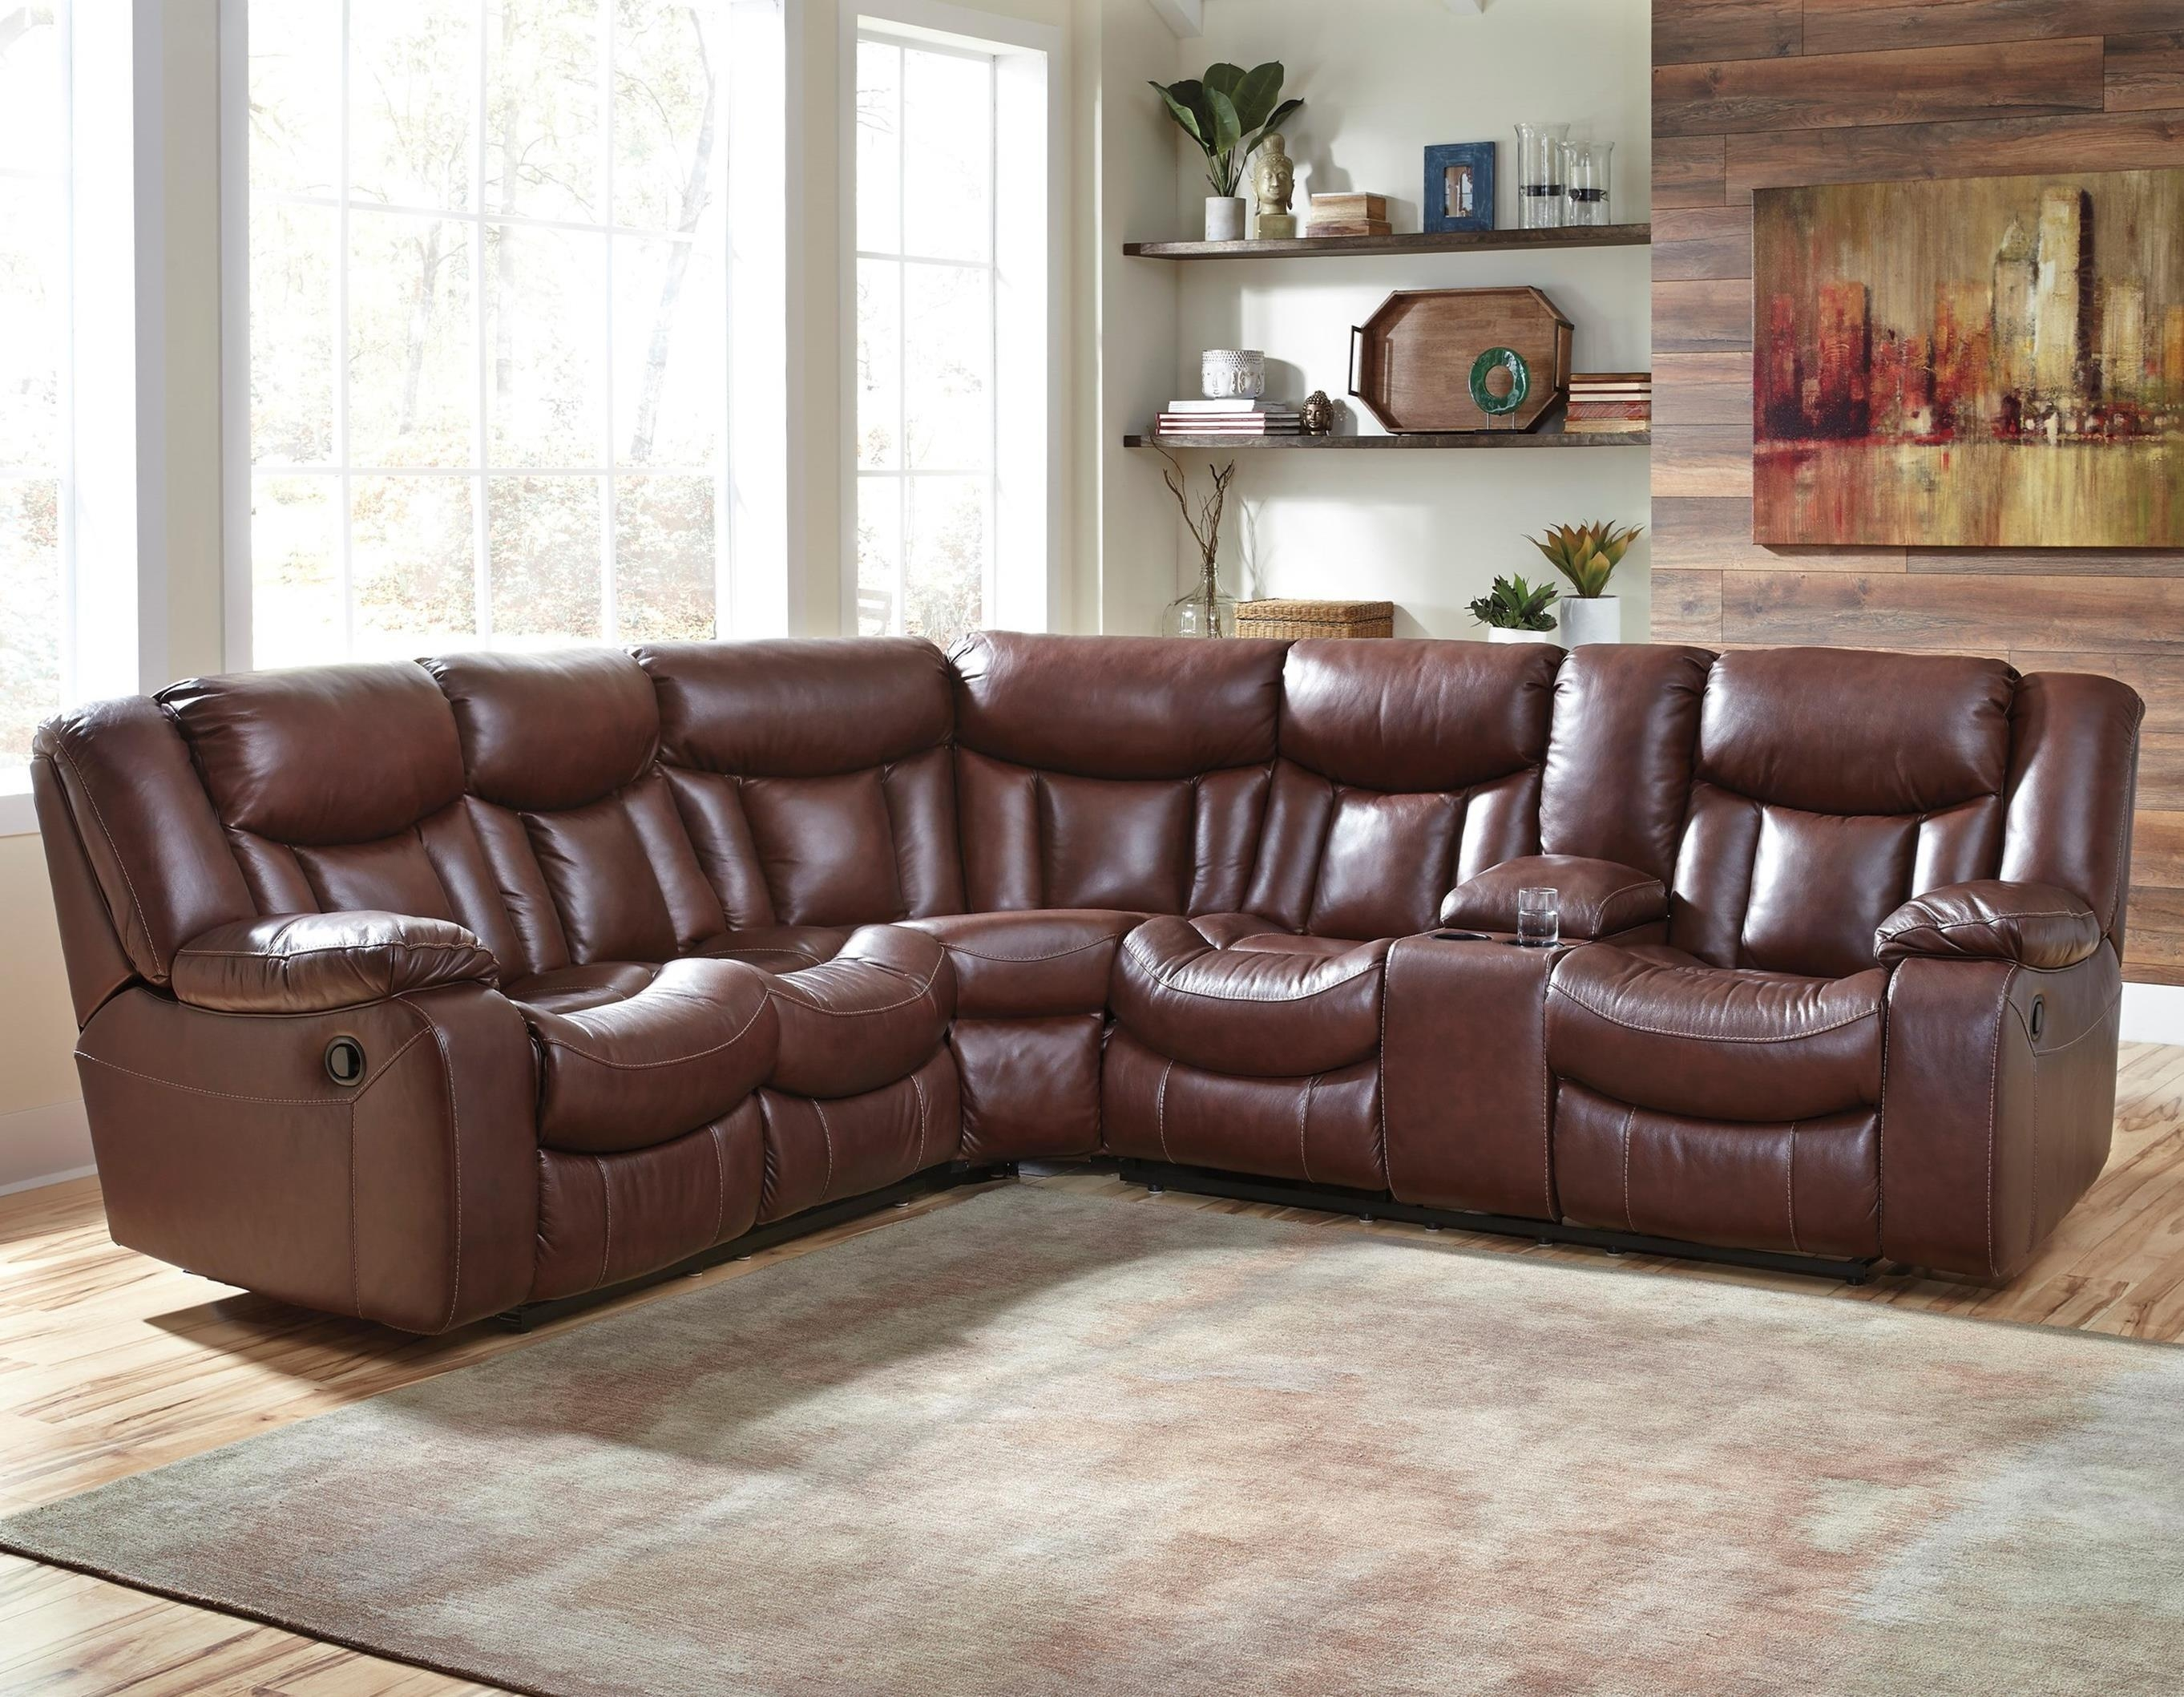 Benchcraft Amaroo Brown Leather Match 2 Piece Reclining Sectional Inside Benchcraft Leather Sofas (View 12 of 20)